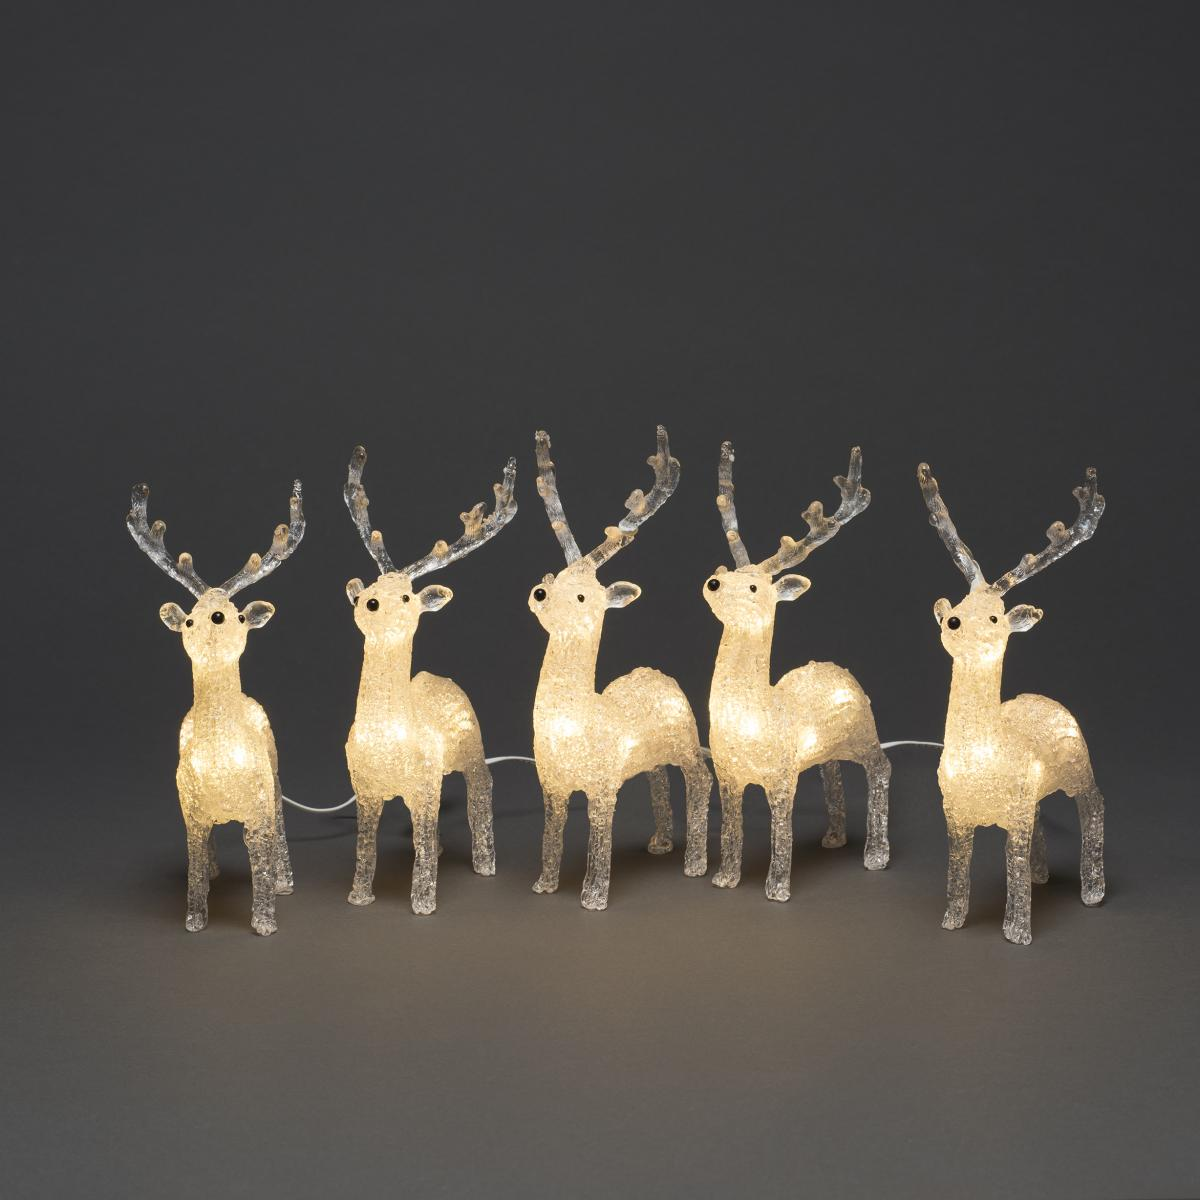 Acrylic Reindeers - Set of 5 – Now Only £20.00